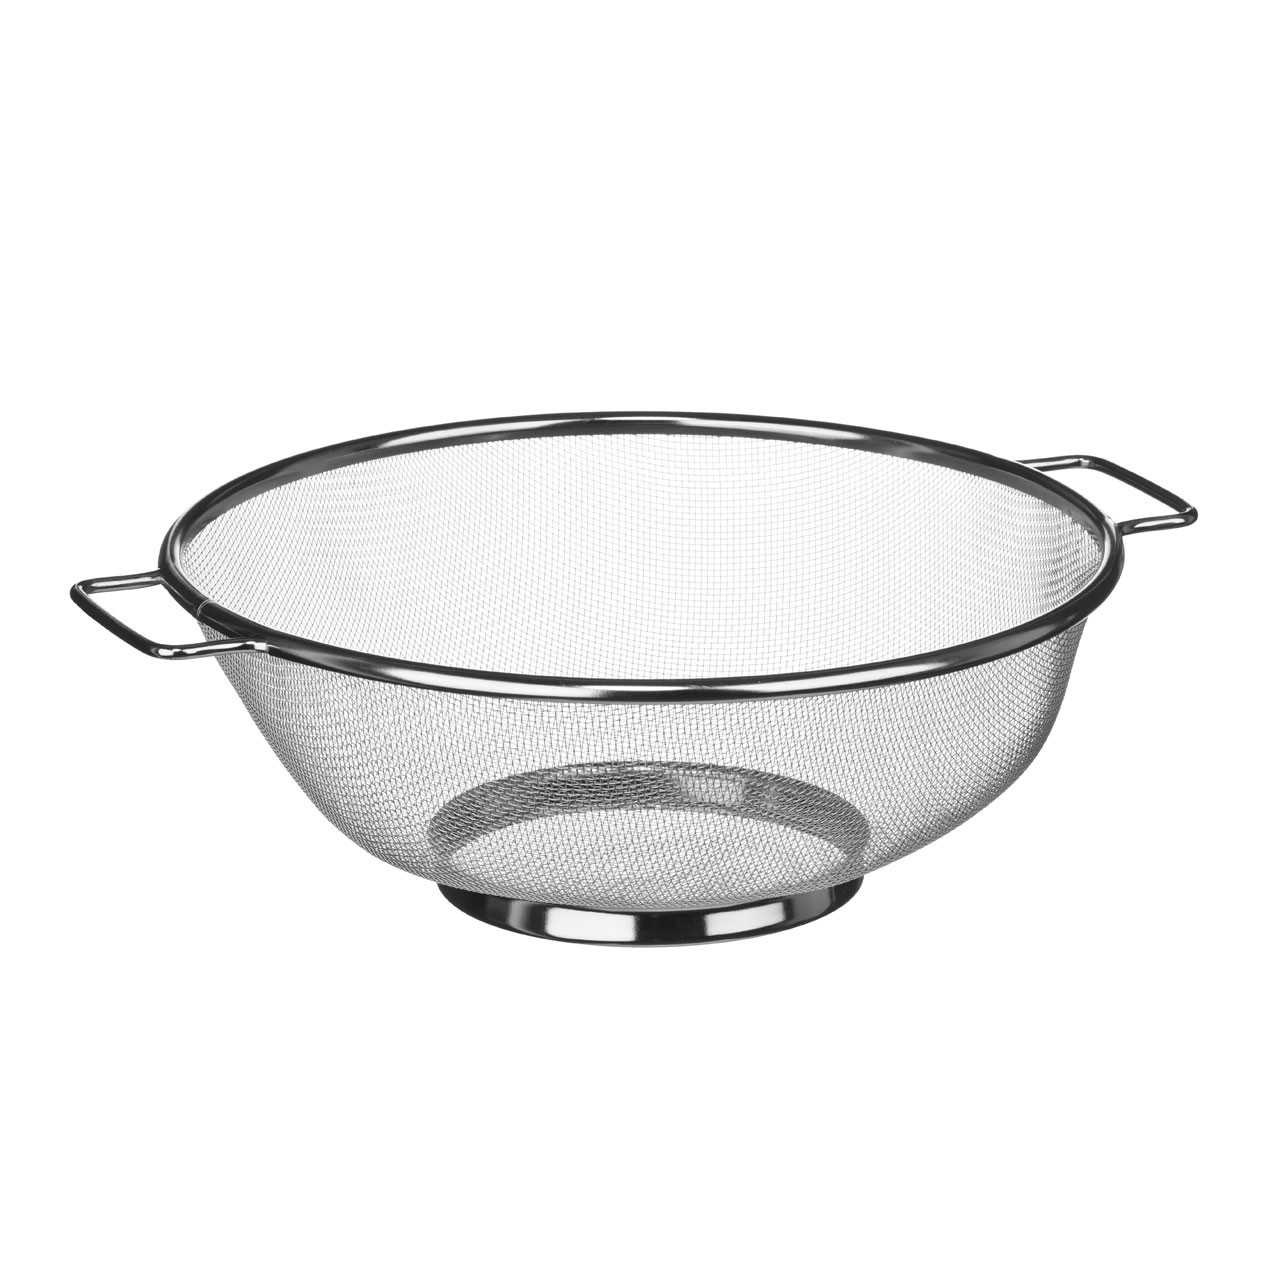 Sieve with Handles, Stainless Steel